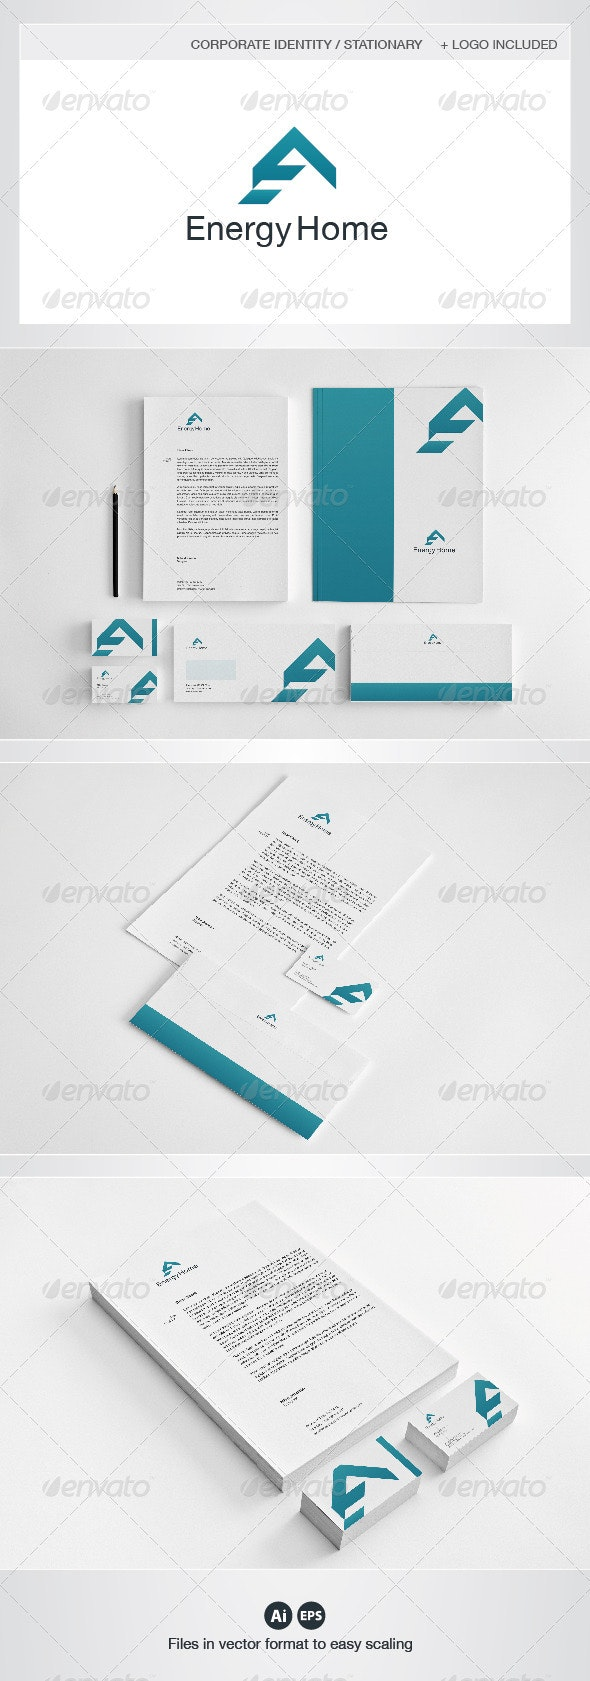 Energy Home Corporate Identity - Stationery Print Templates